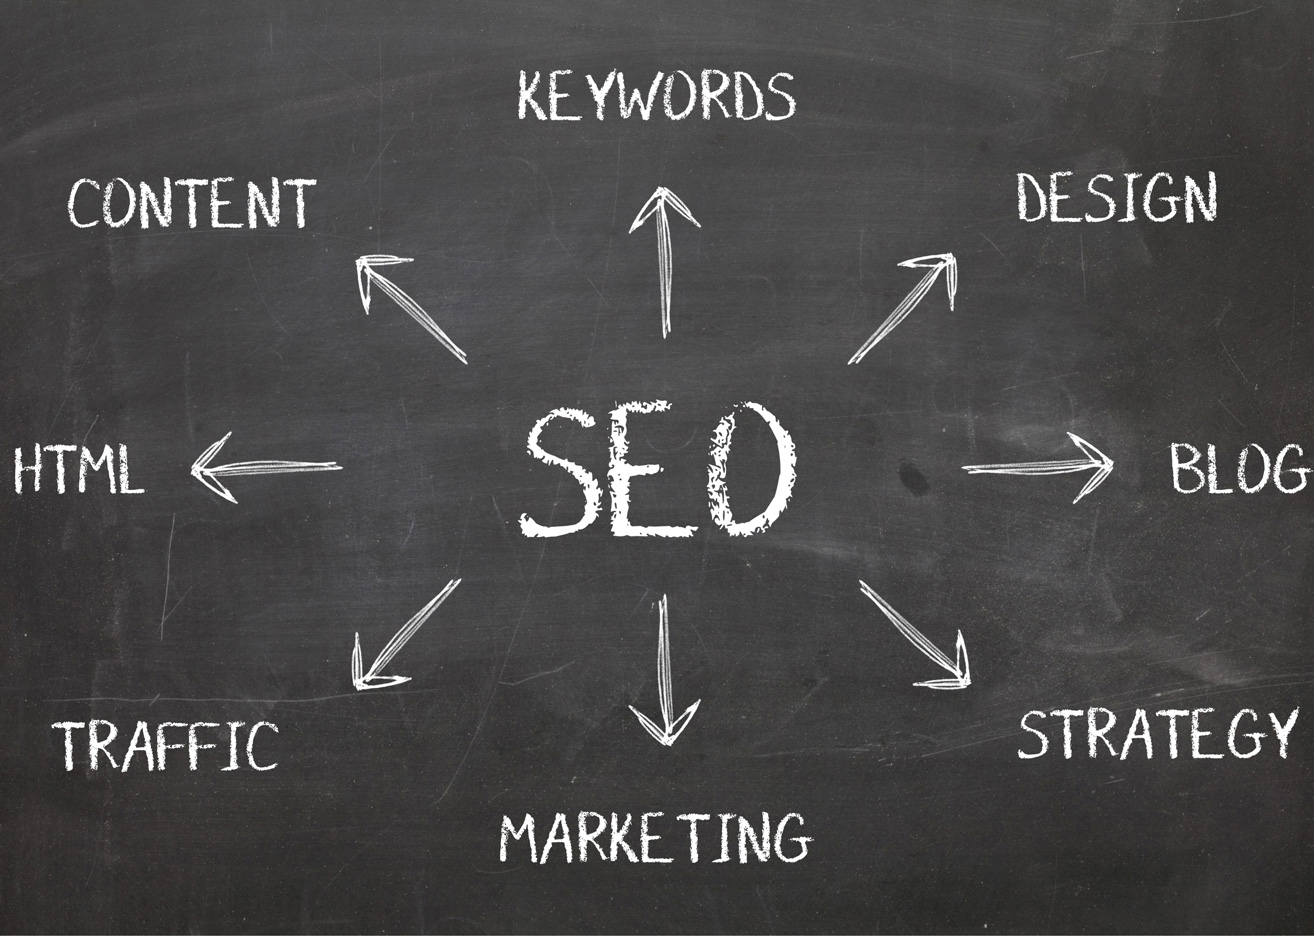 SEO and Search Marketing Trends